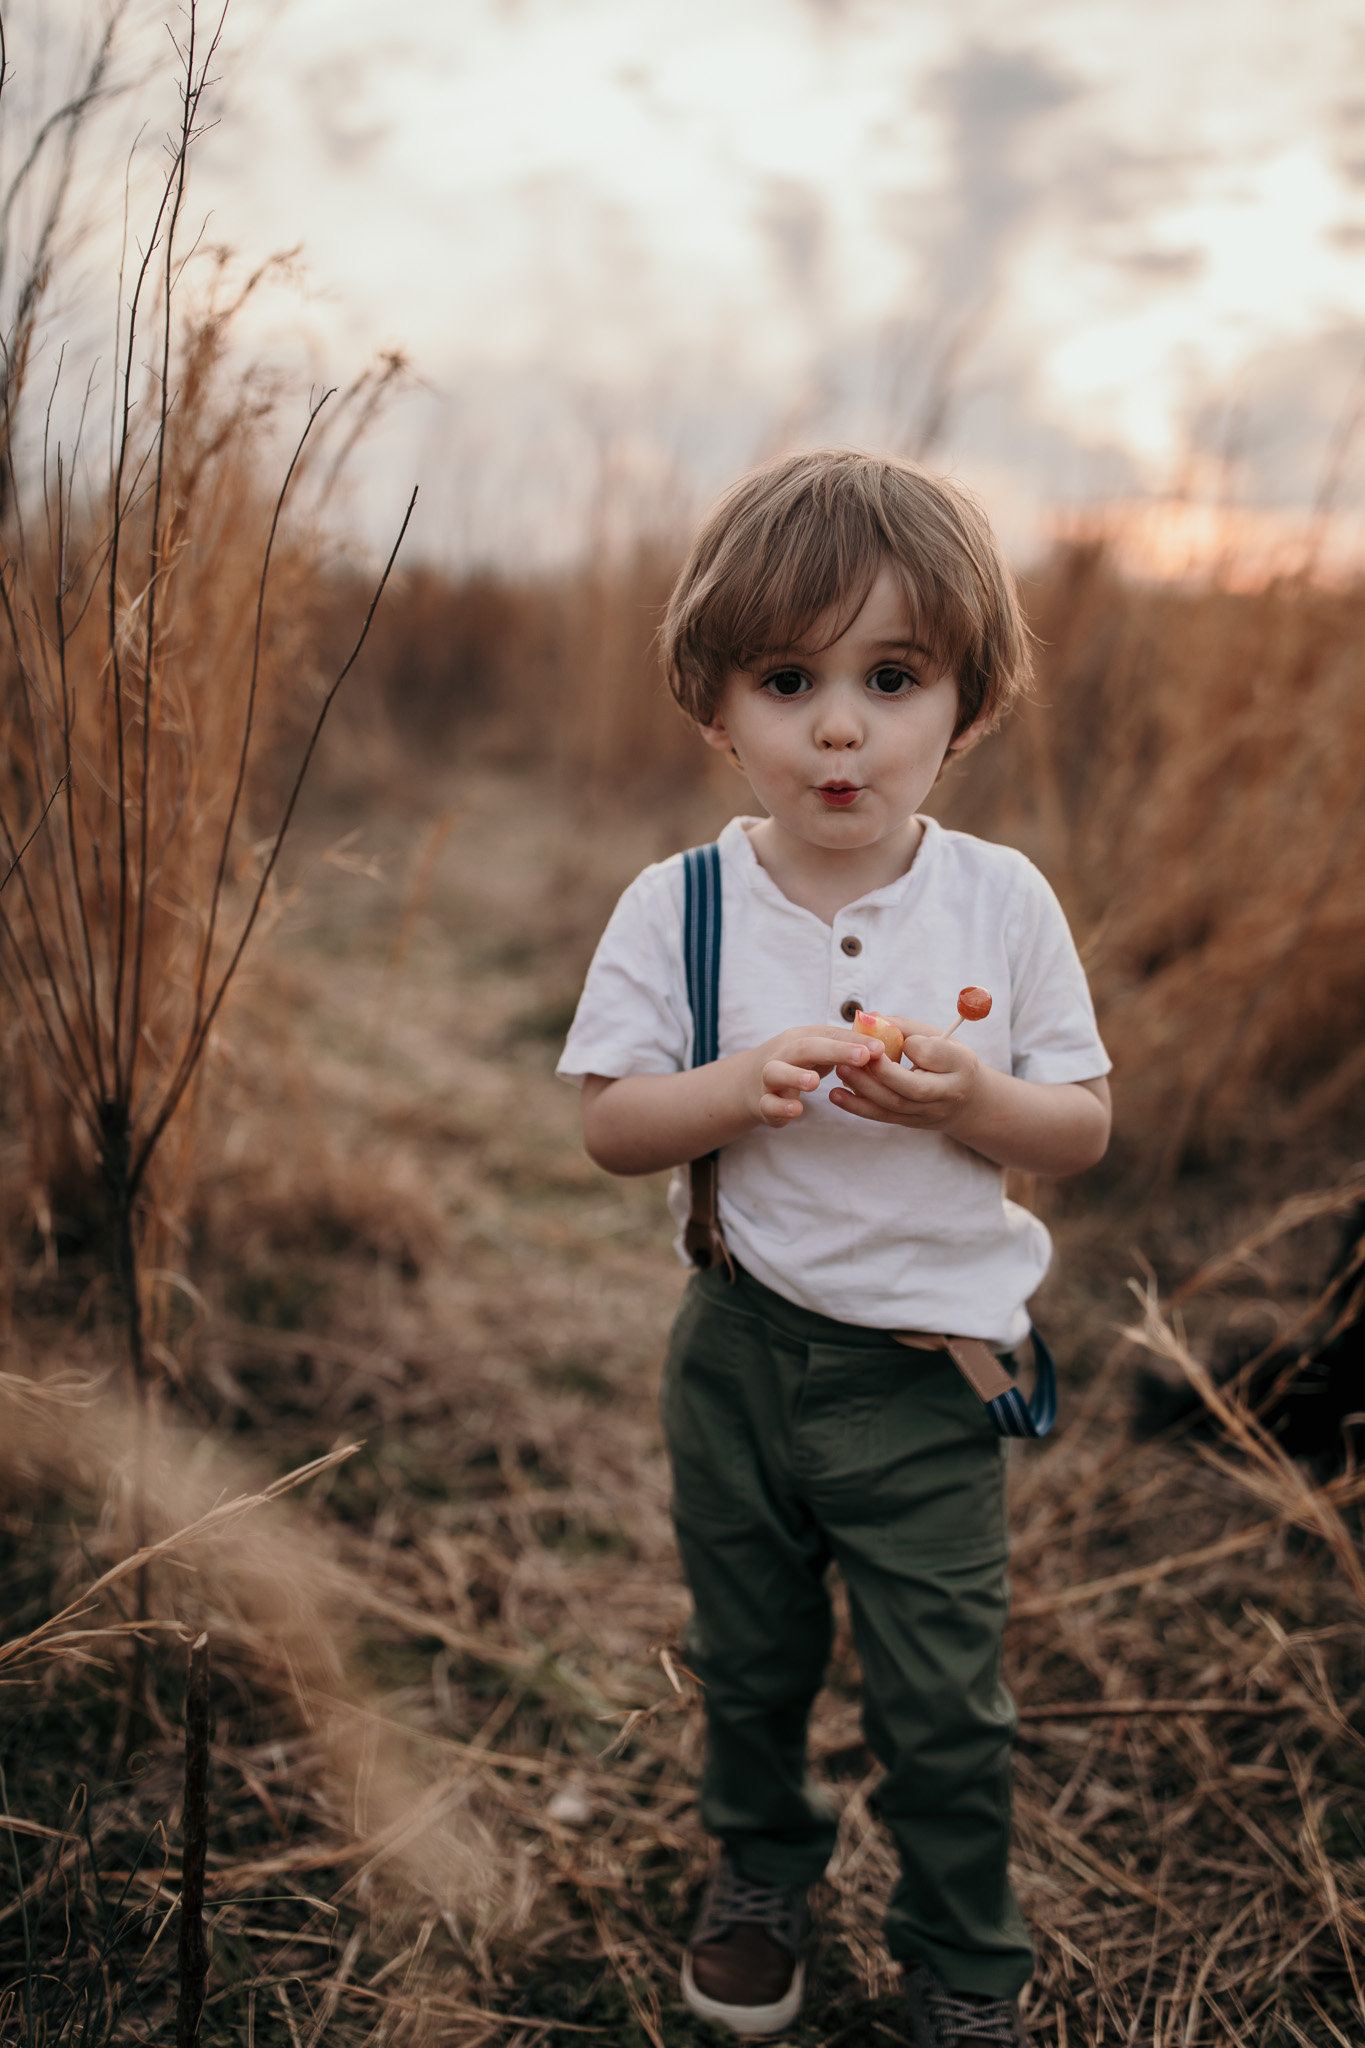 Toddler Standing in Field